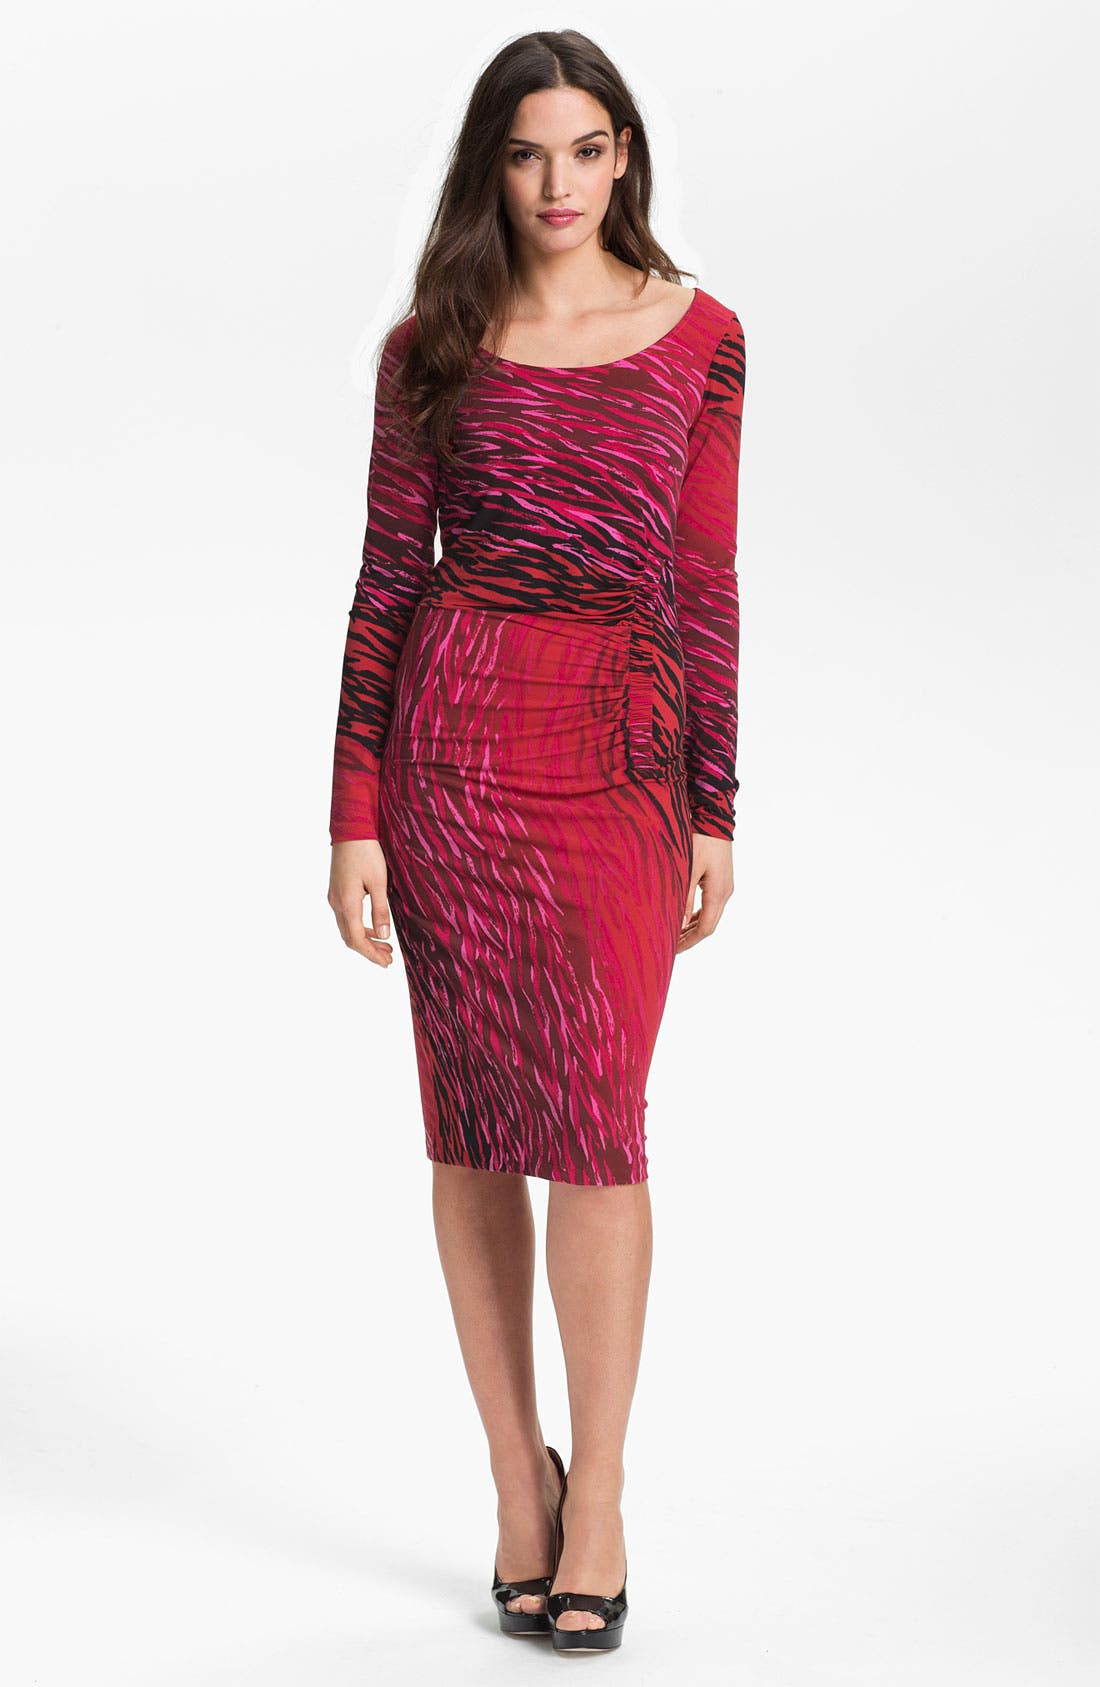 Alternate Image 1 Selected - Anne Klein Ombré Zebra Print Dress